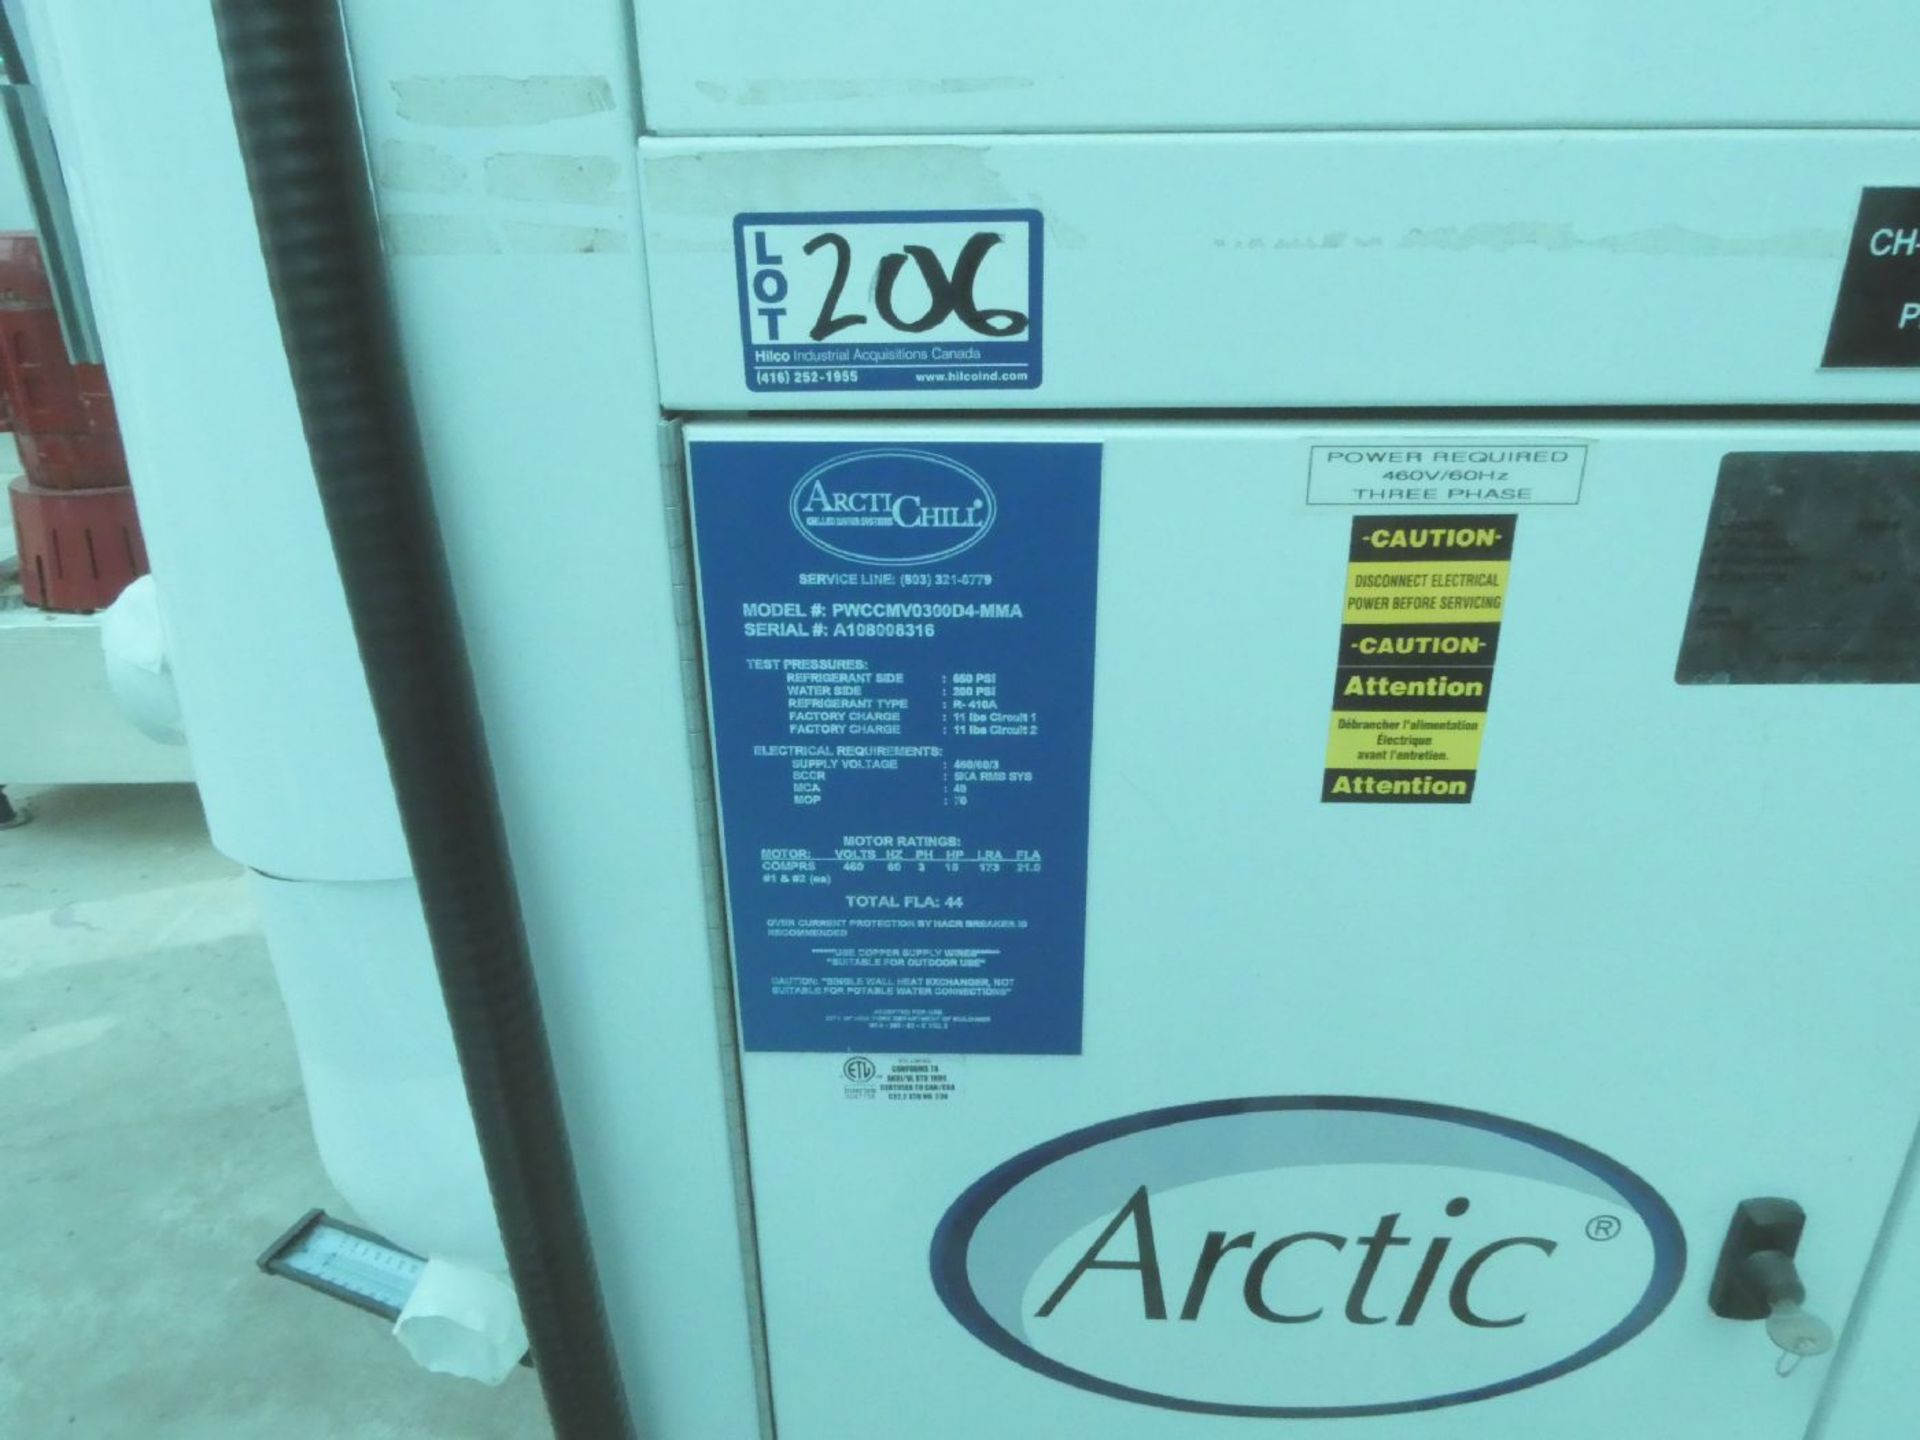 Artic Chill PWCCMV0300D4-MMA 15-HP Chiller - Image 12 of 12